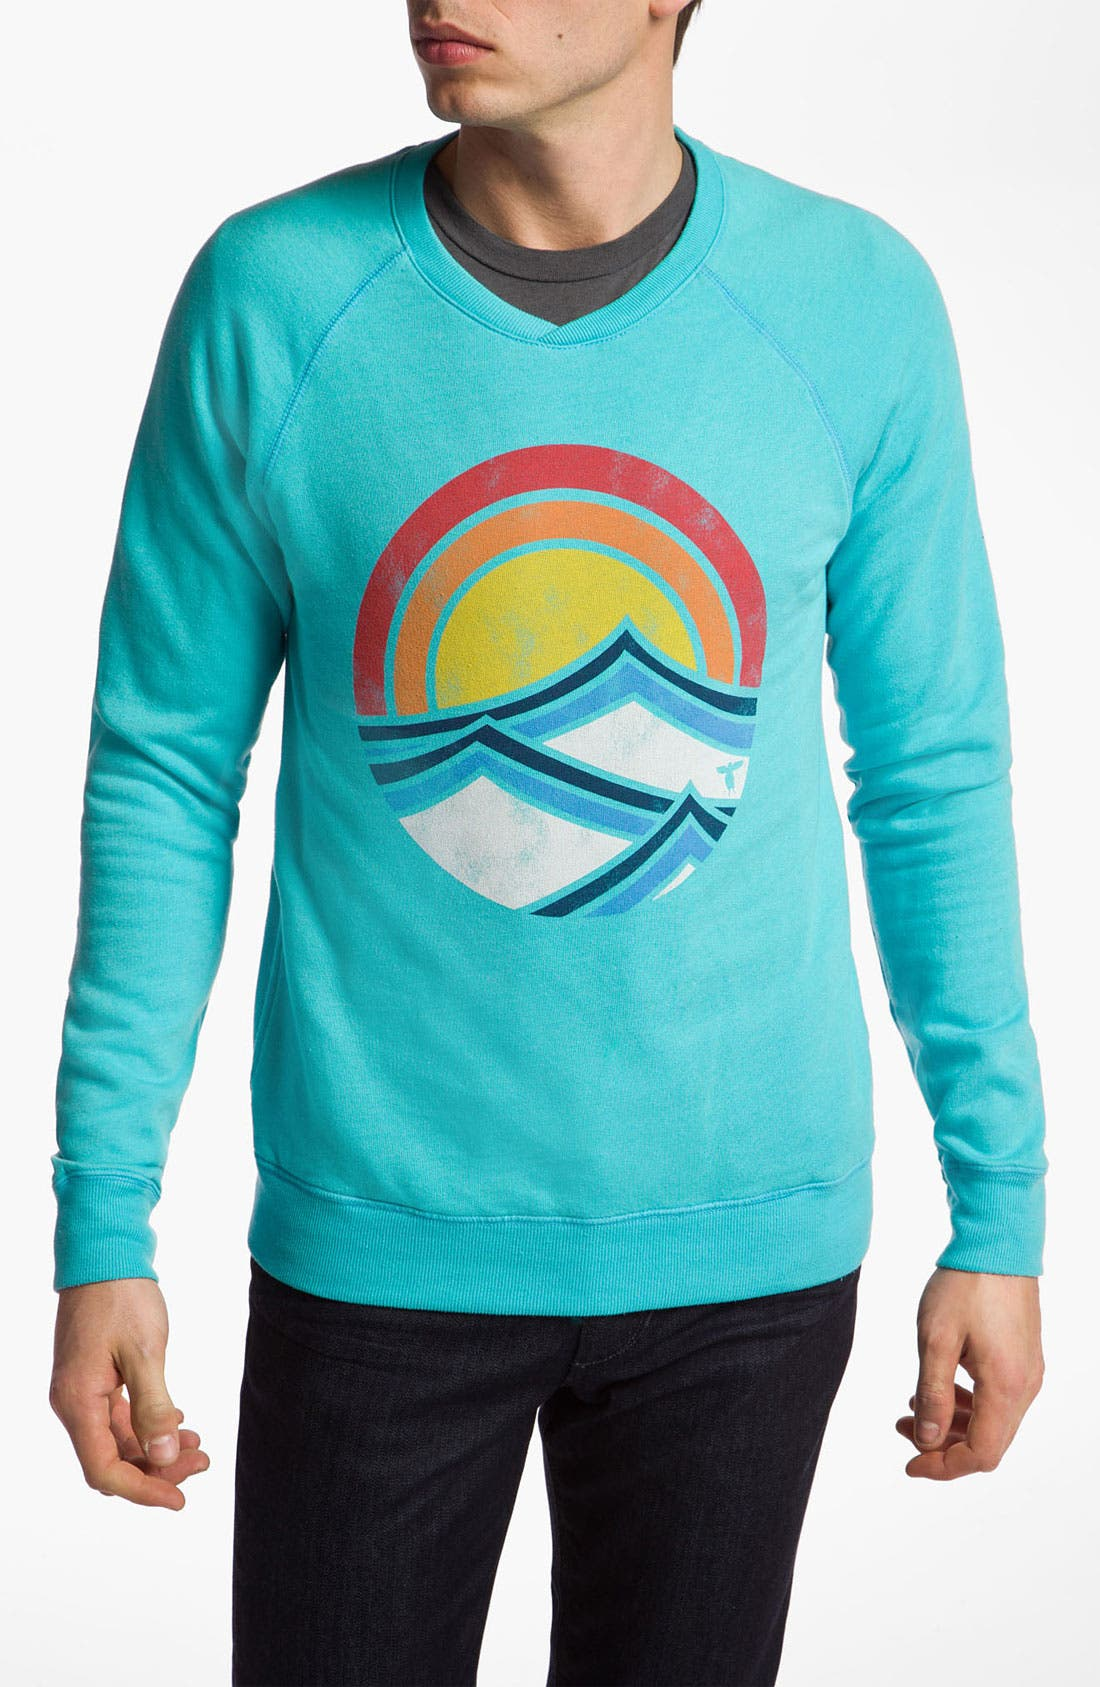 Alternate Image 1 Selected - Topo Ranch 'Swell Rise' Crewneck Sweatshirt